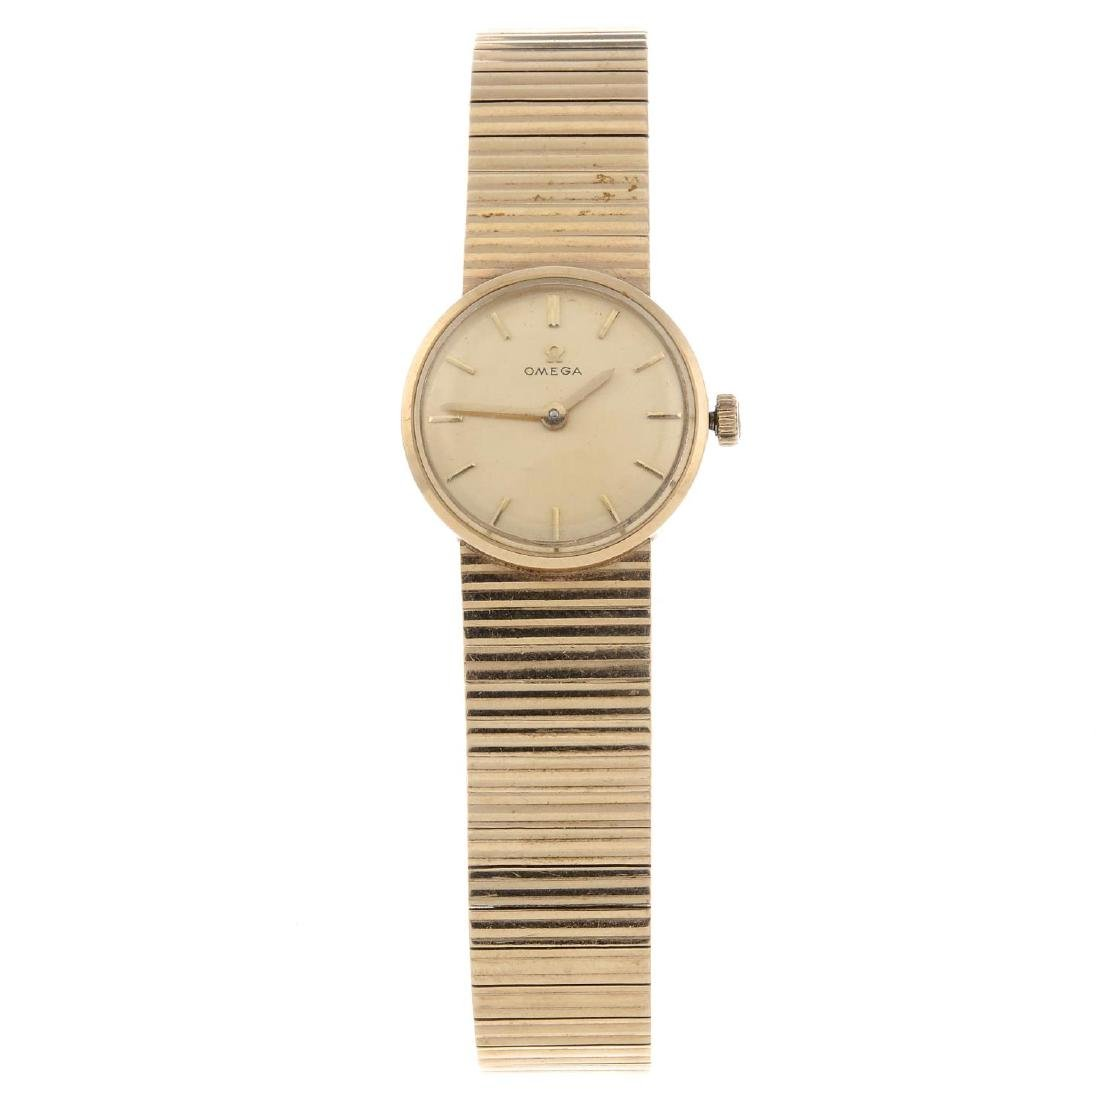 OMEGA - a lady's bracelet watch. 9ct yellow gold case,